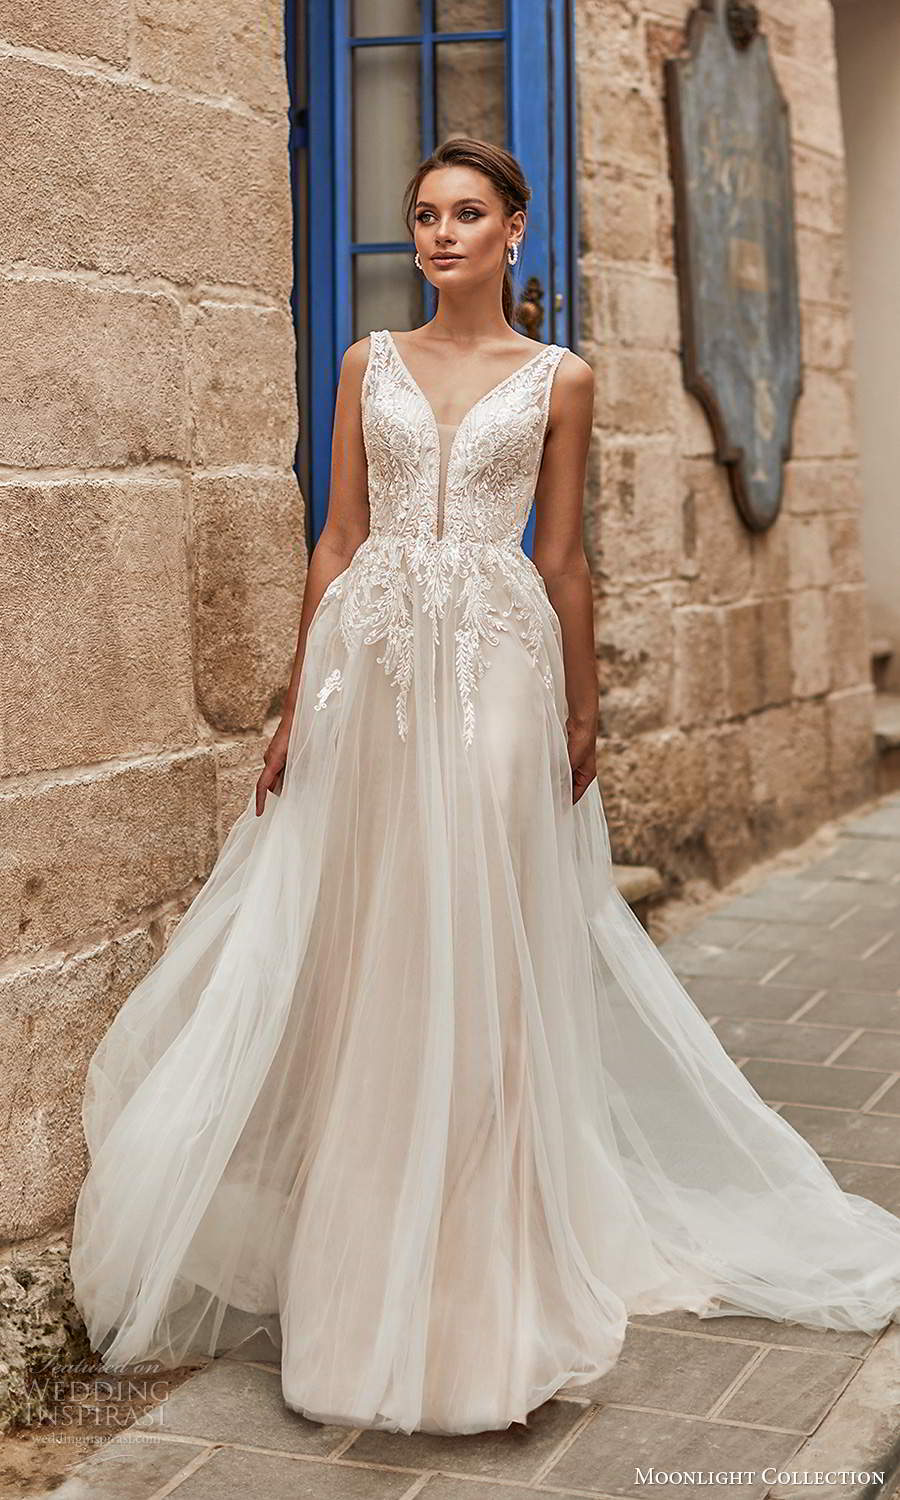 moonlight collection spring 2021 bridal sleeveless straps plunging v neckline embellished bodie a line ball gown wedding dress chapel train blush (1) mv